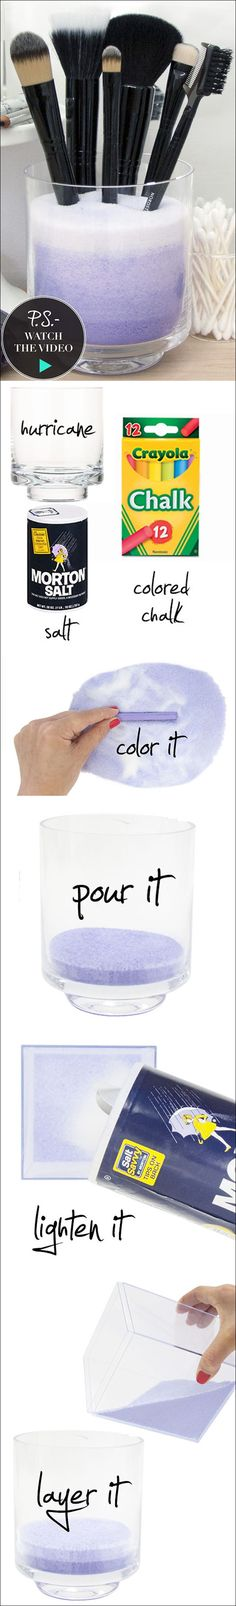 Maura- this could be a fun rainy day project for kids.. Doesn't had to be for makeup brushes